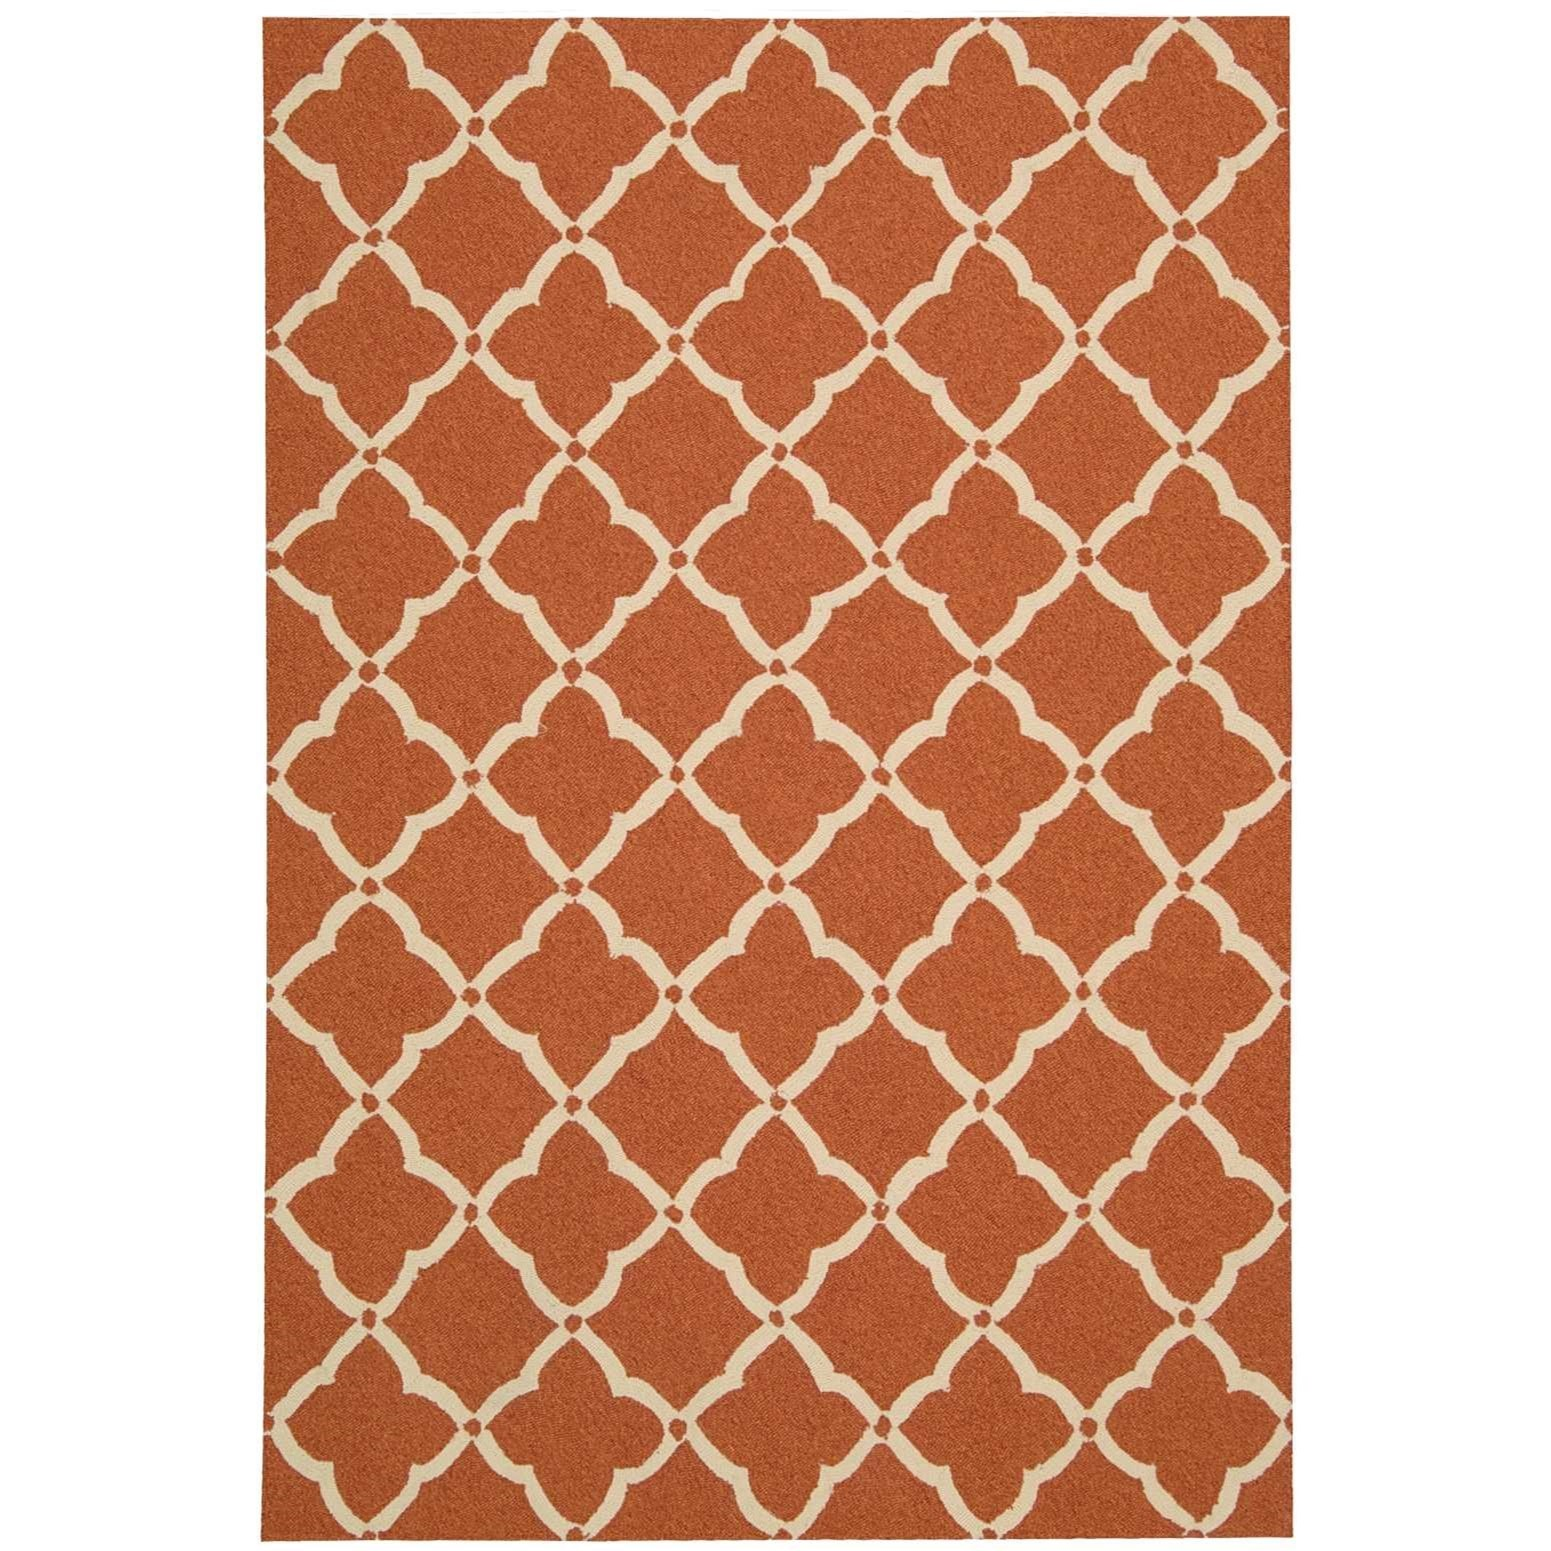 """Portico 2'3"""" x 3'9"""" Orange Rectangle Rug by Nourison at Home Collections Furniture"""